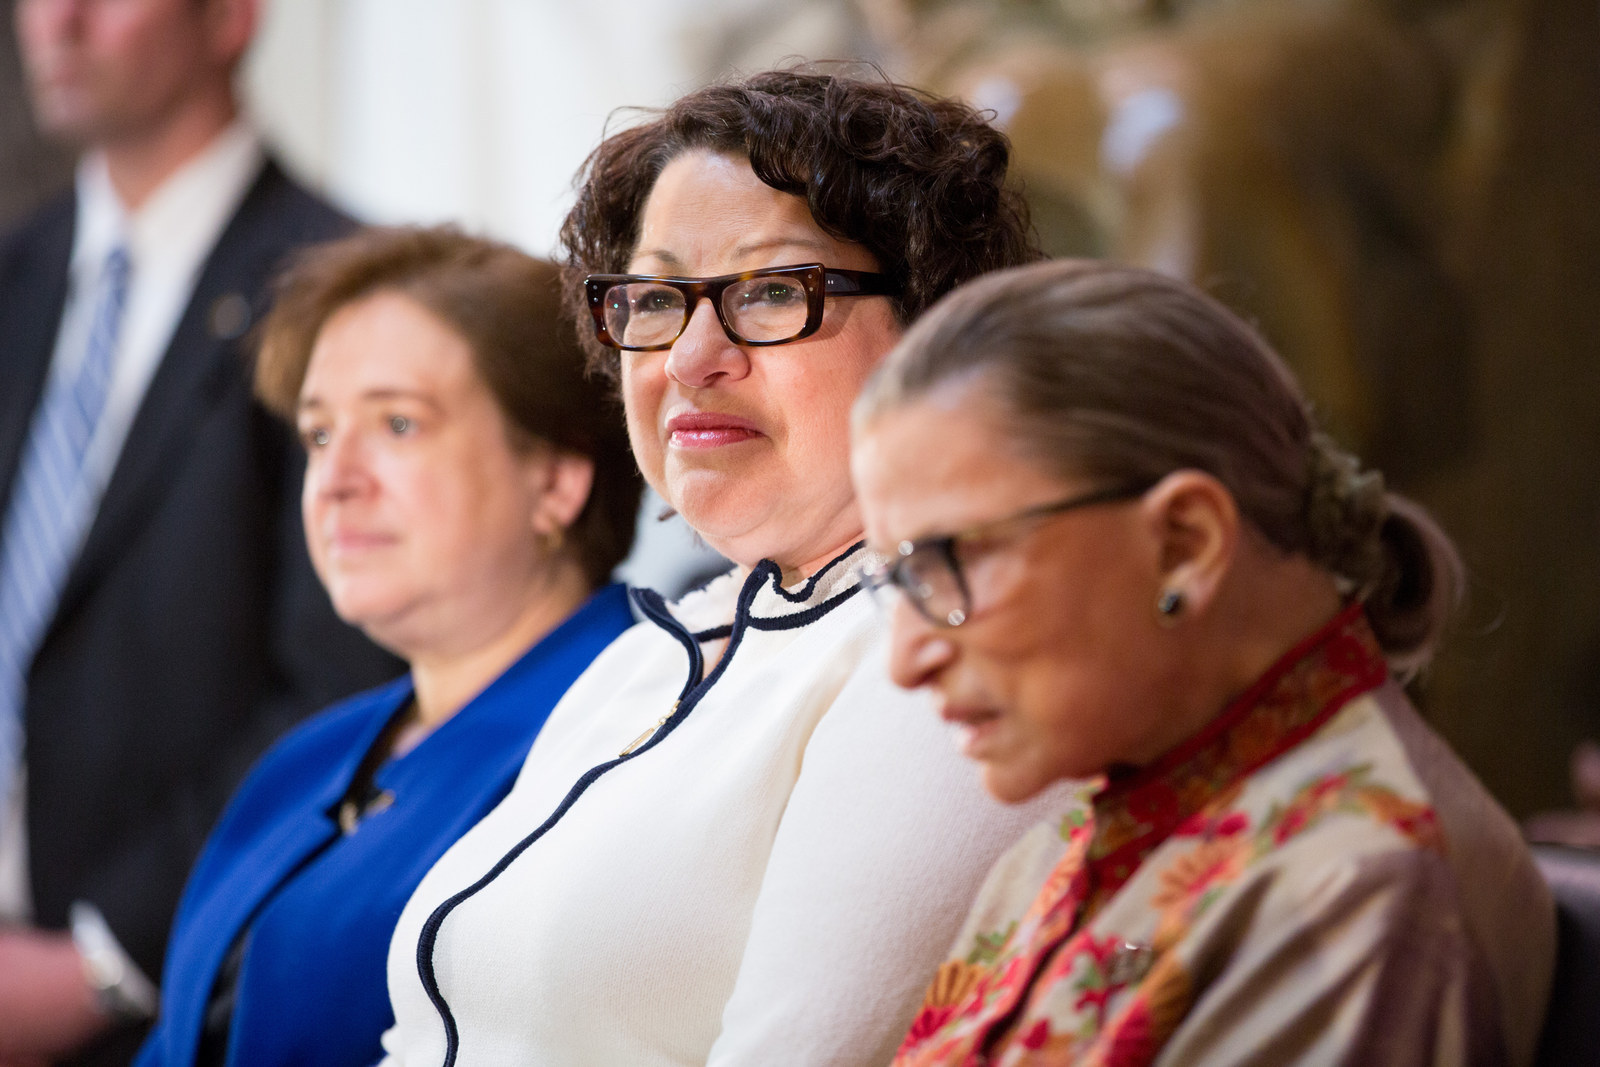 Justice Sotomayor Thinks The Supreme Court Needs To Be More Diverse